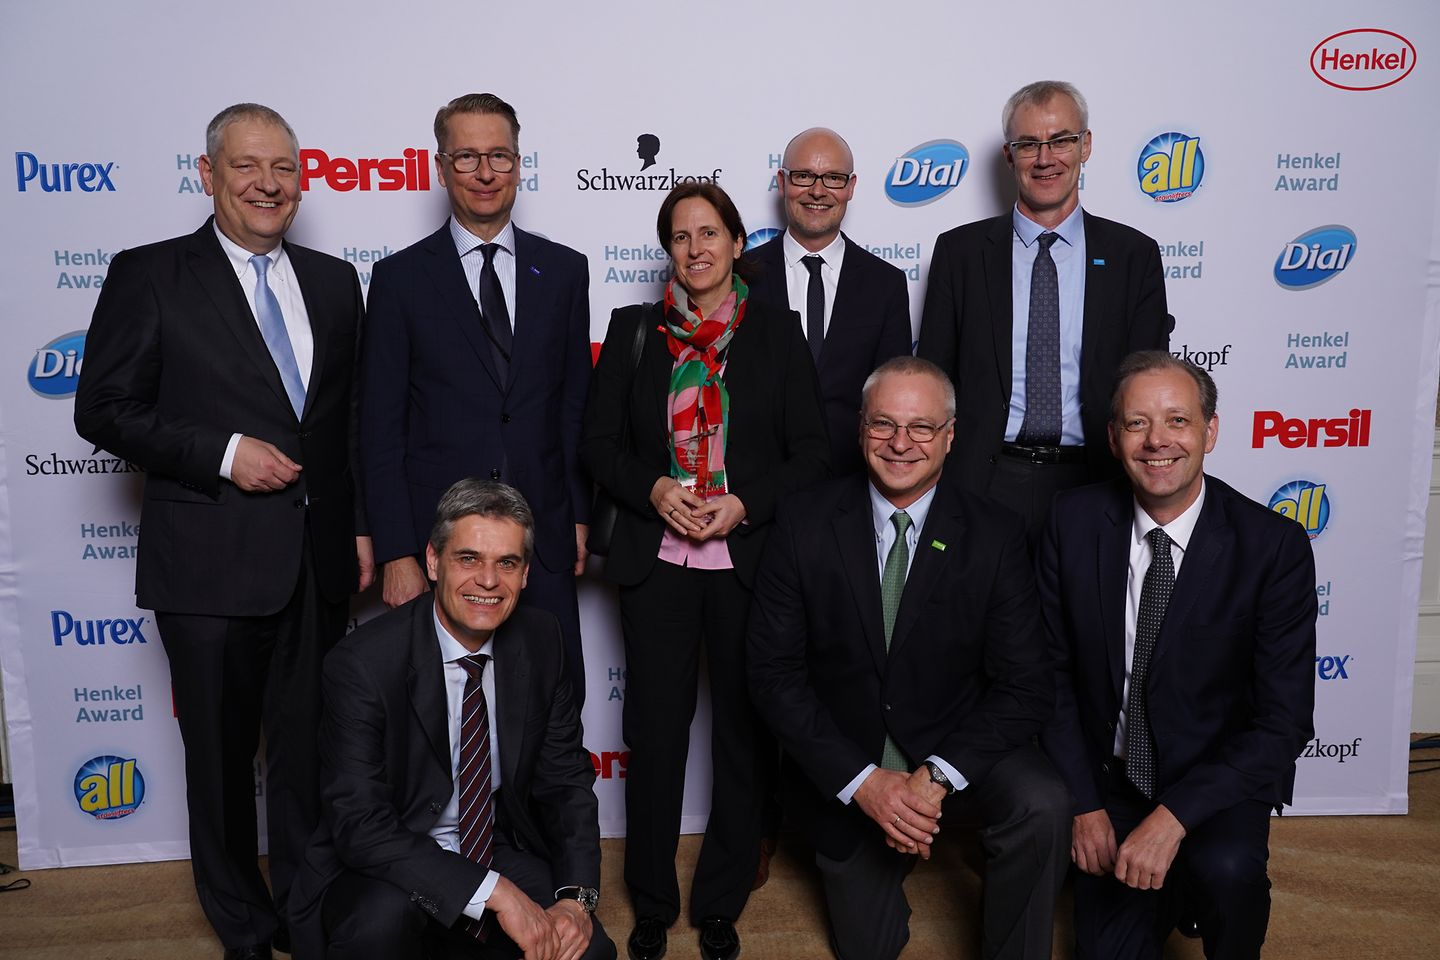 Best Innovation Contributor Award Laundry & Home Care / BASF (runner-up): back: Thomas Müller-Kirschbaum, Ralph Schweens, Anja Winkler, Arndt Scheidgen, Torsten Wieprecht; front: Sören Hildebrandt, Andrés Jaffé, Thomas Holenia